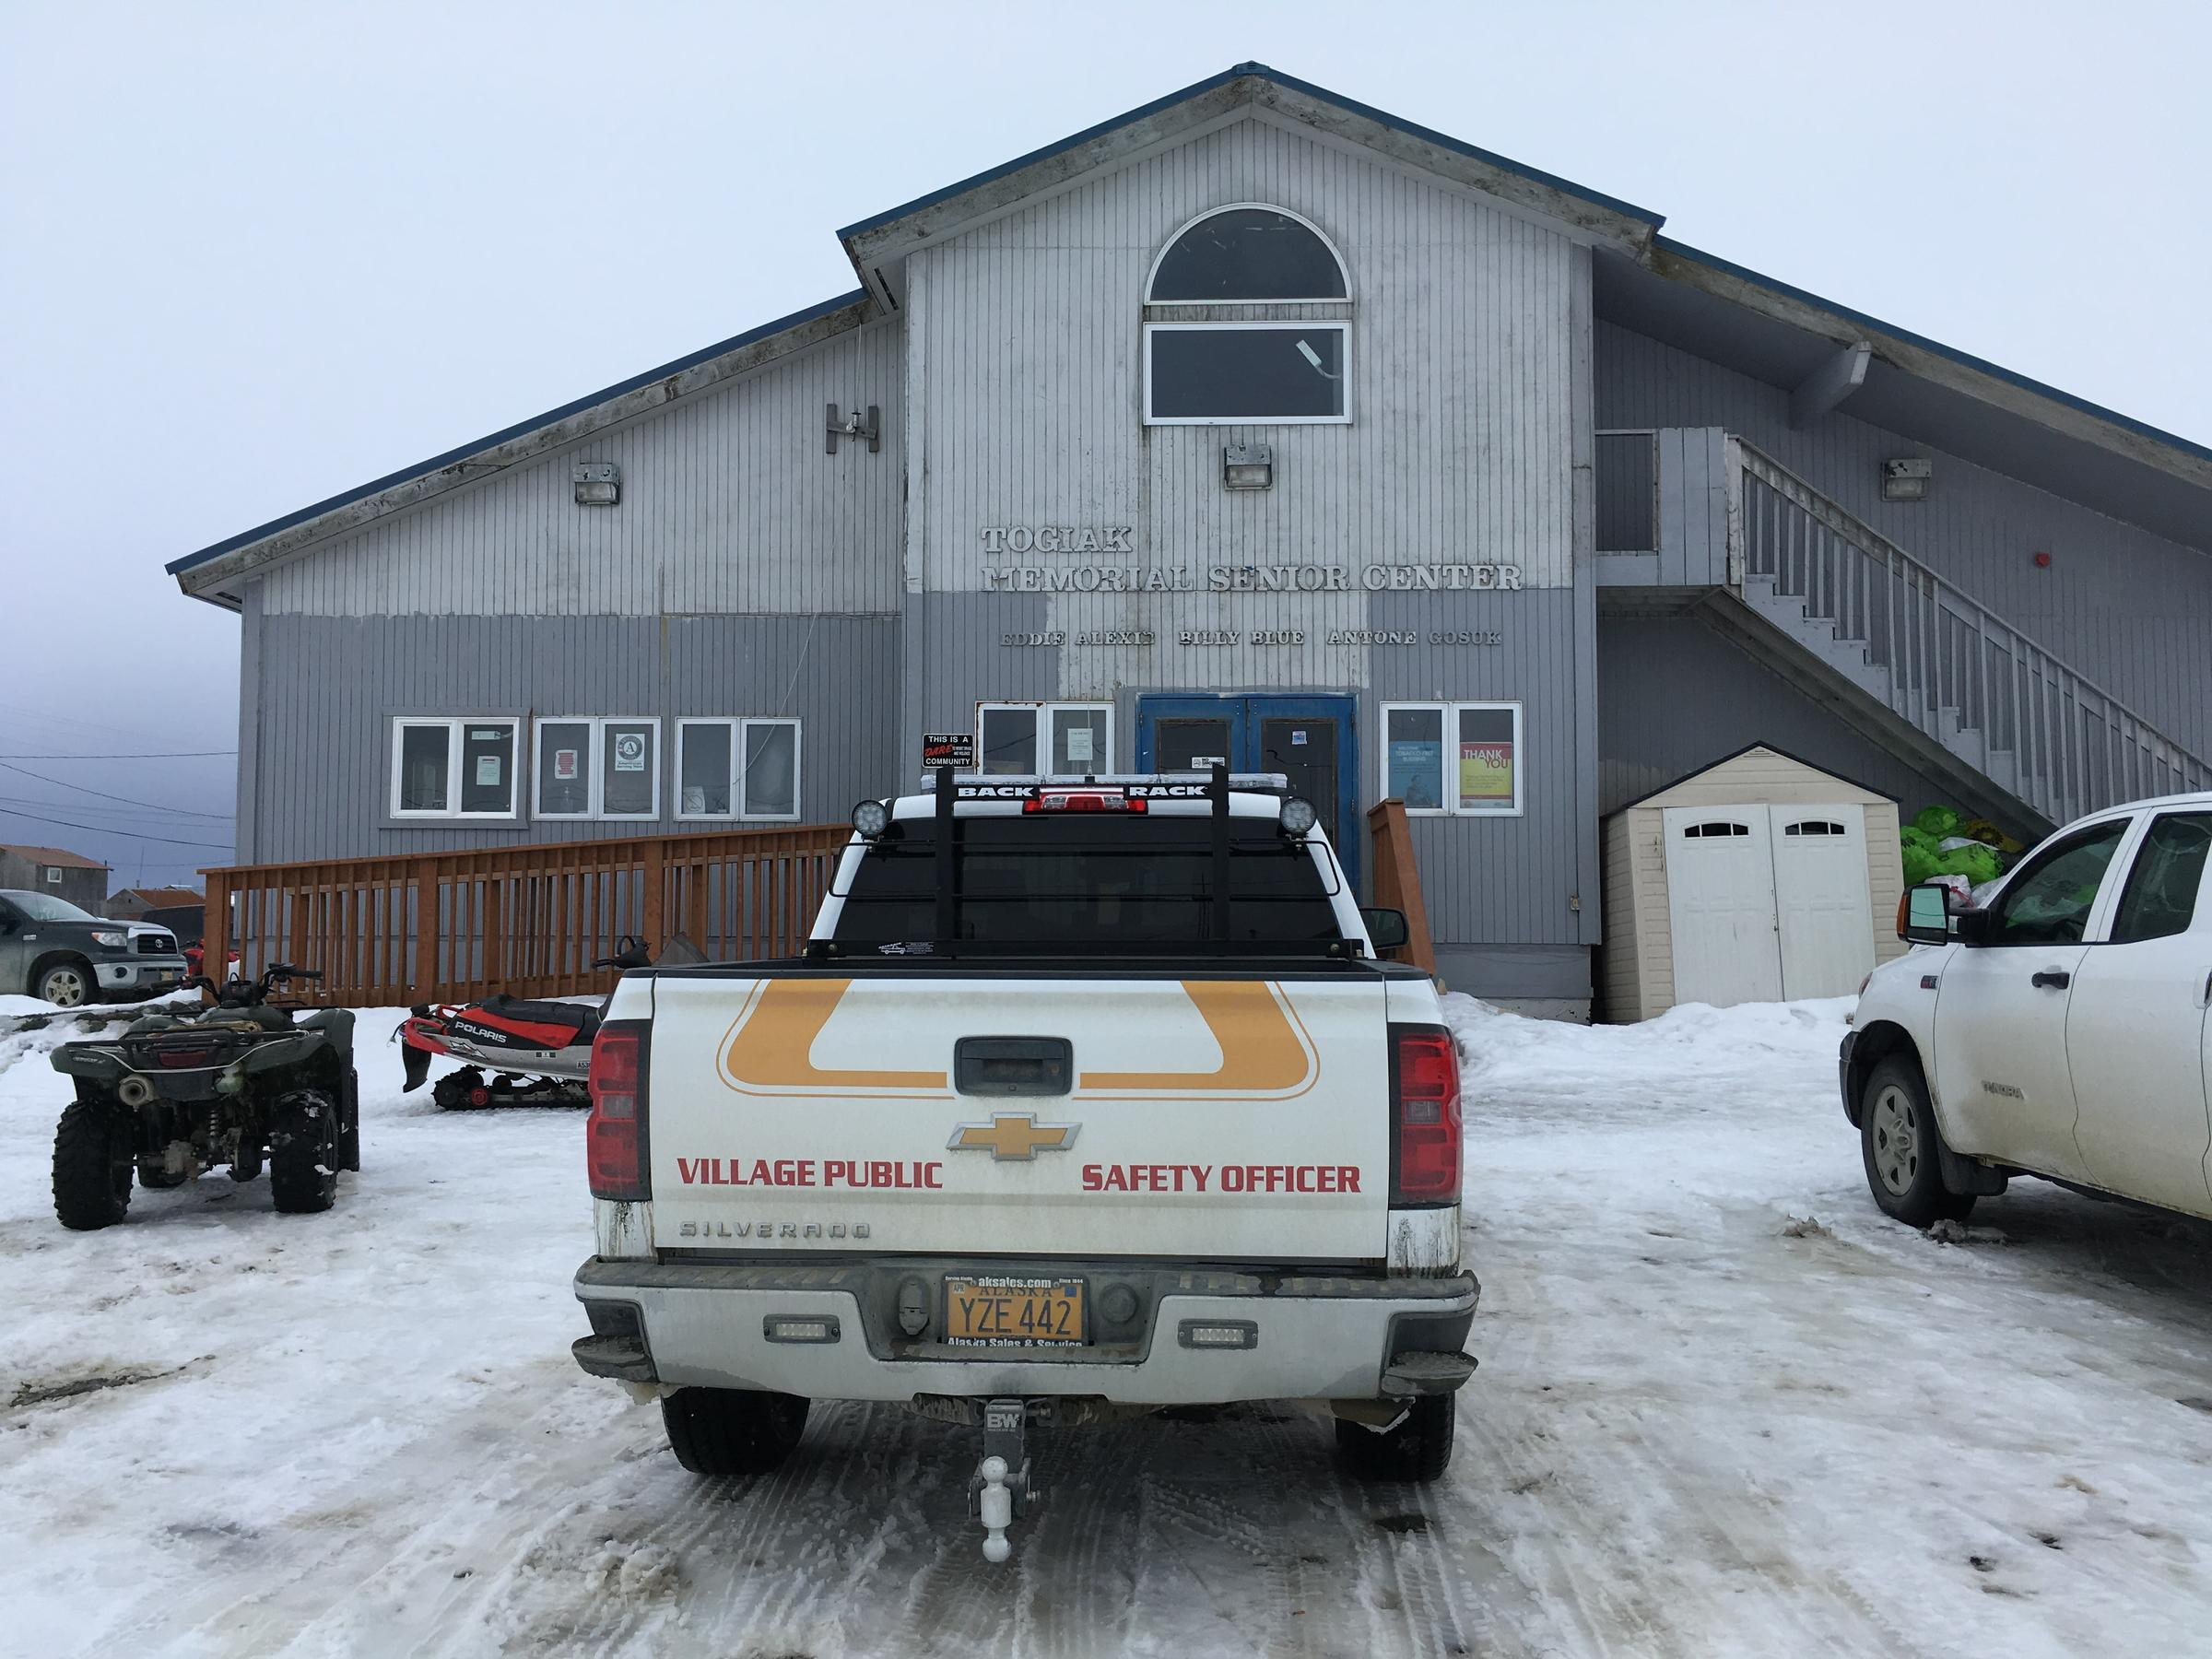 single men in togiak The national transportation safety board is meeting in washington, dc tuesday to formally determine the cause of a crash near togiak in late 2016 which left three people dead.